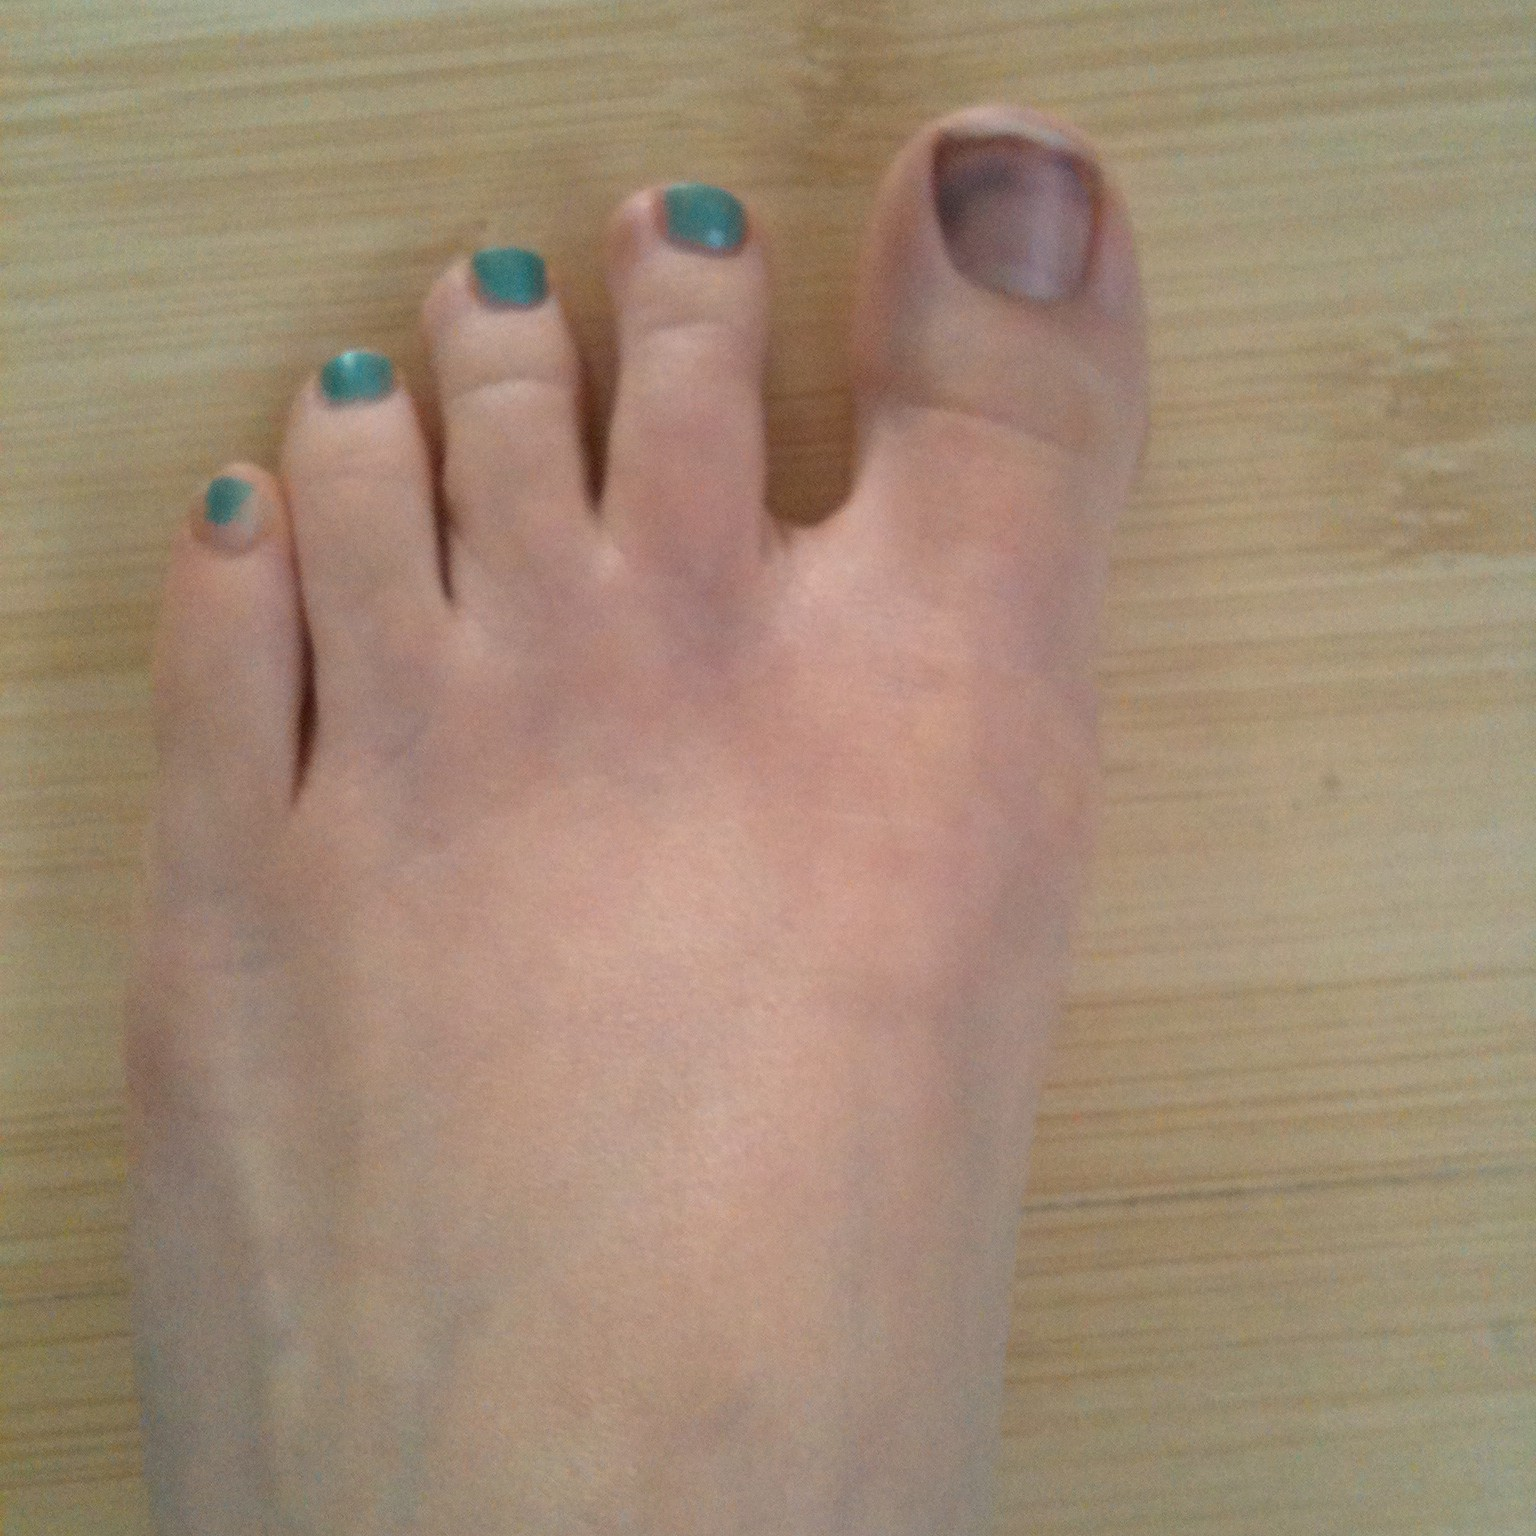 Bruise Under the Big Toenail Treatment - The Complete Guide!